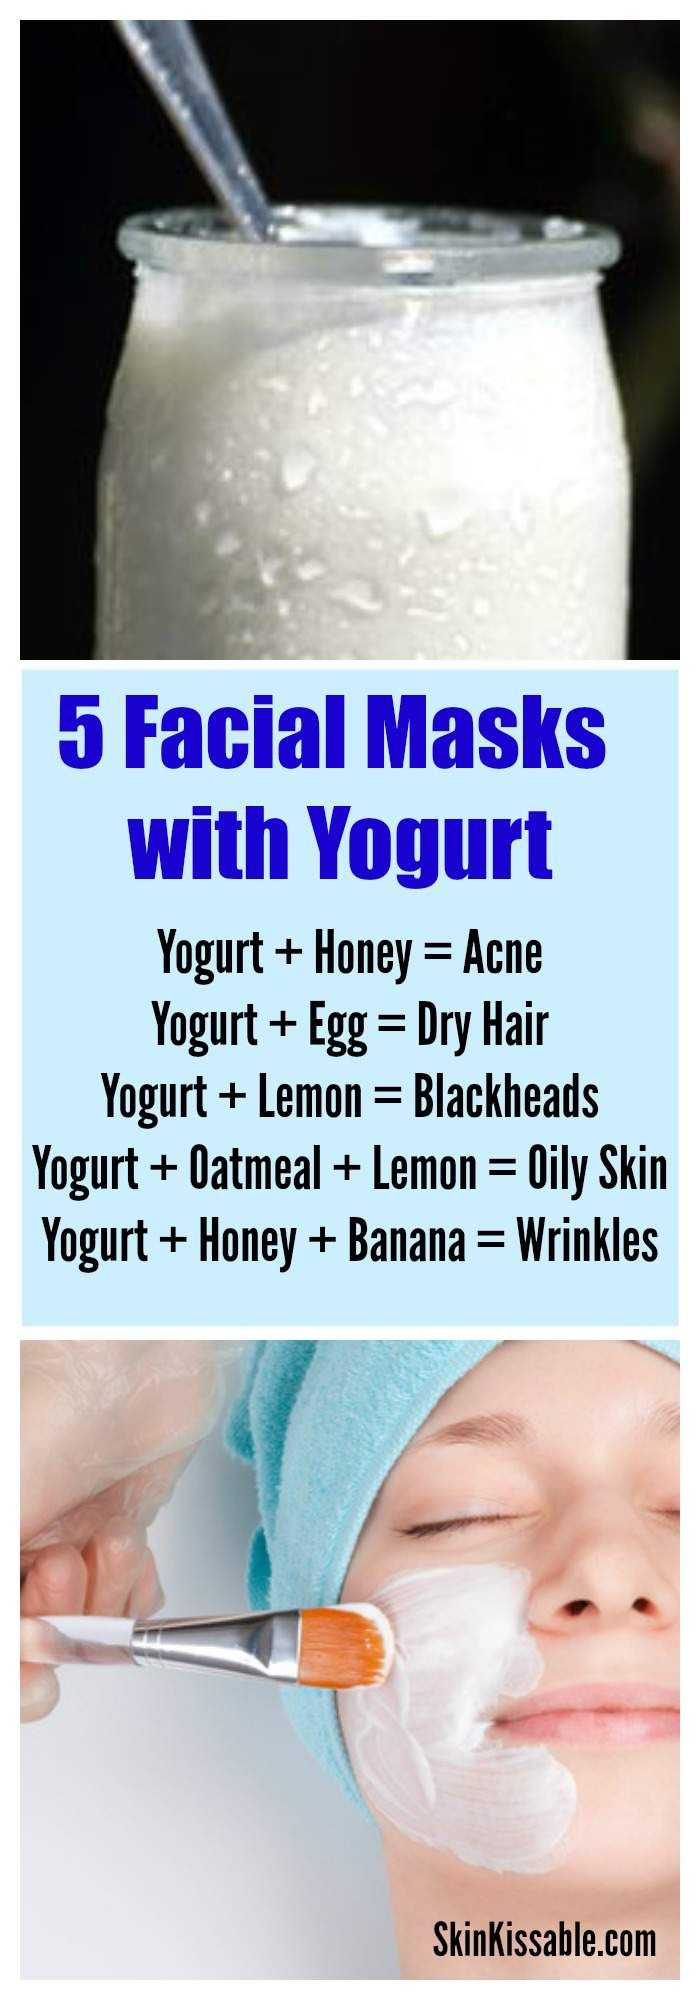 What Does Yogurt Do for Your Skin? 8 Benefits & 5 Natural Remedies